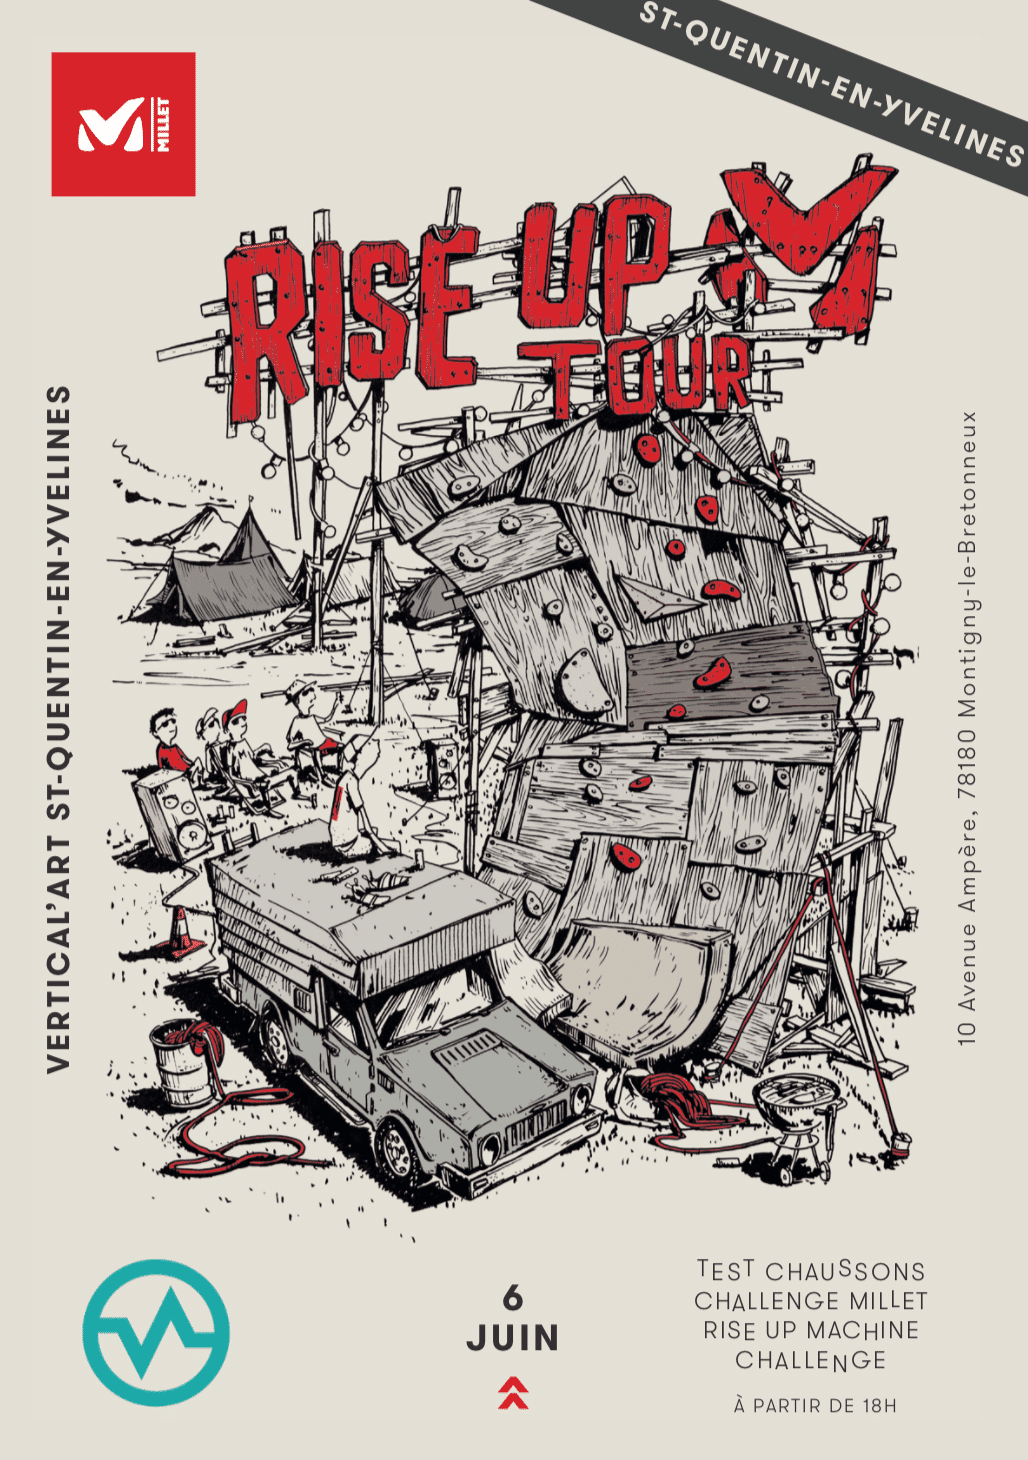 rise up millet à vertical'art / saint quentin en yvelien / paris / salle d'escalade de bloc / restaurant / bar / grimper / chaussons / test / challenge / lot à gagner